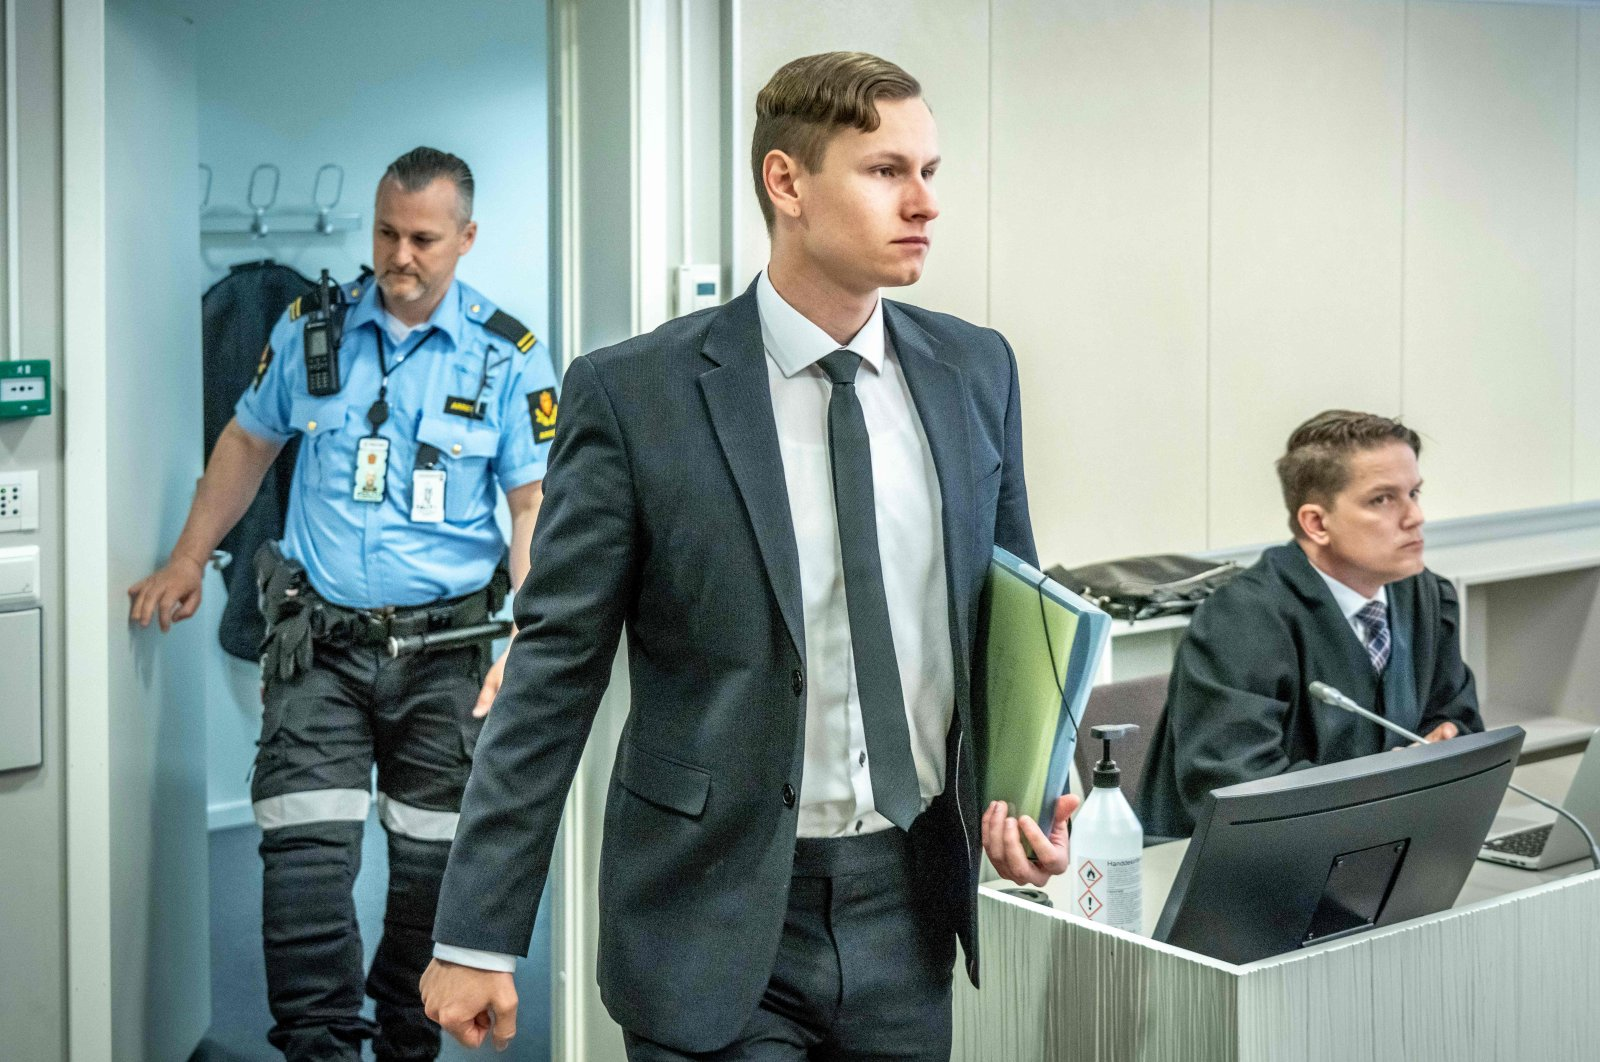 Terror charged, Norwegian Philip Manshaus enters the Asker and Baerum district court for the last day of his trial in Sandvika outside Oslo, Norway, May 20, 2020. (AFP Photo)